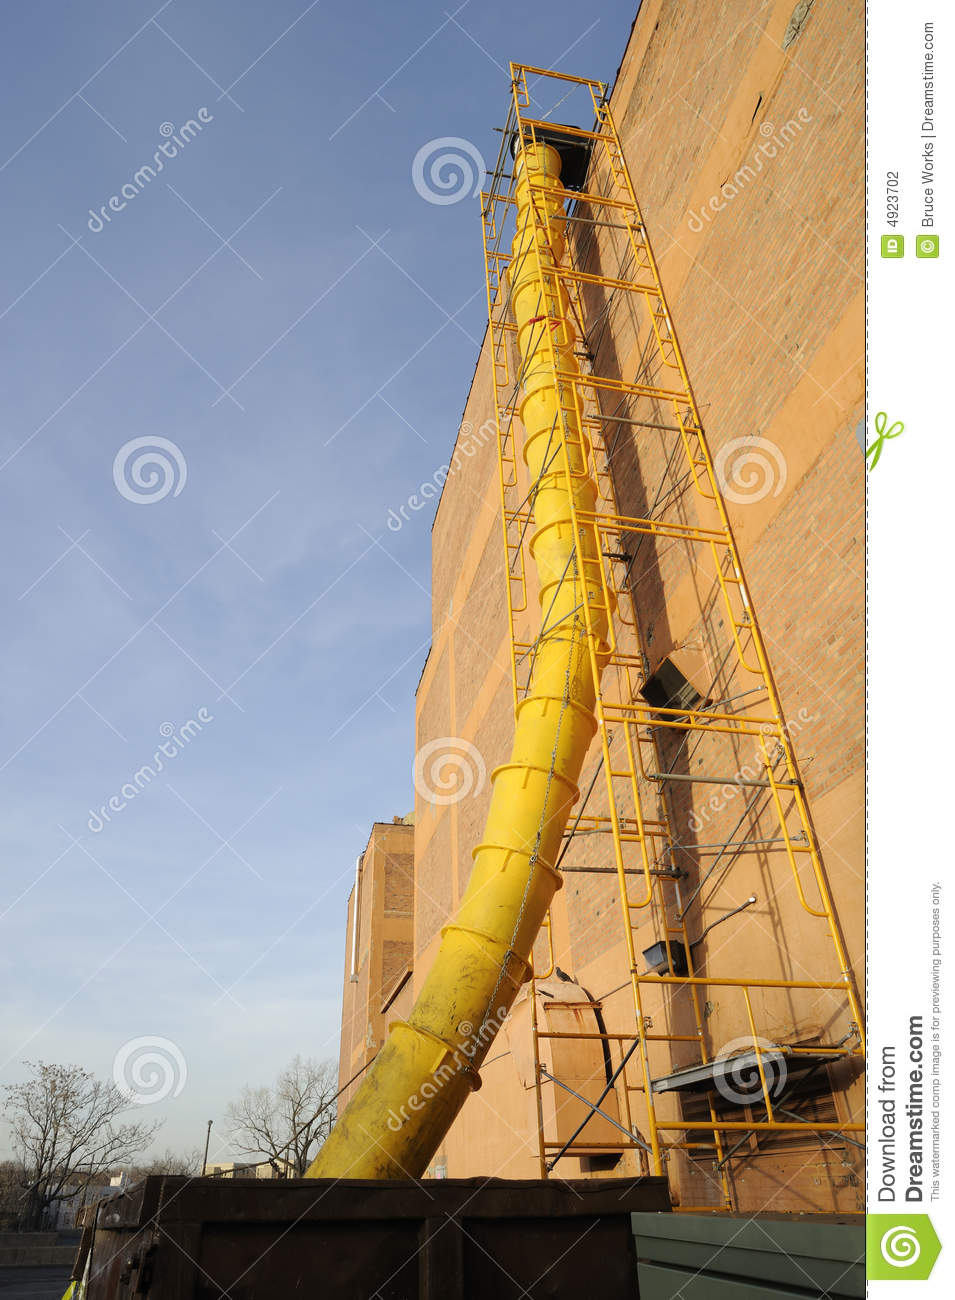 Construction Garbage Chute : Construction waste chute stock photography image